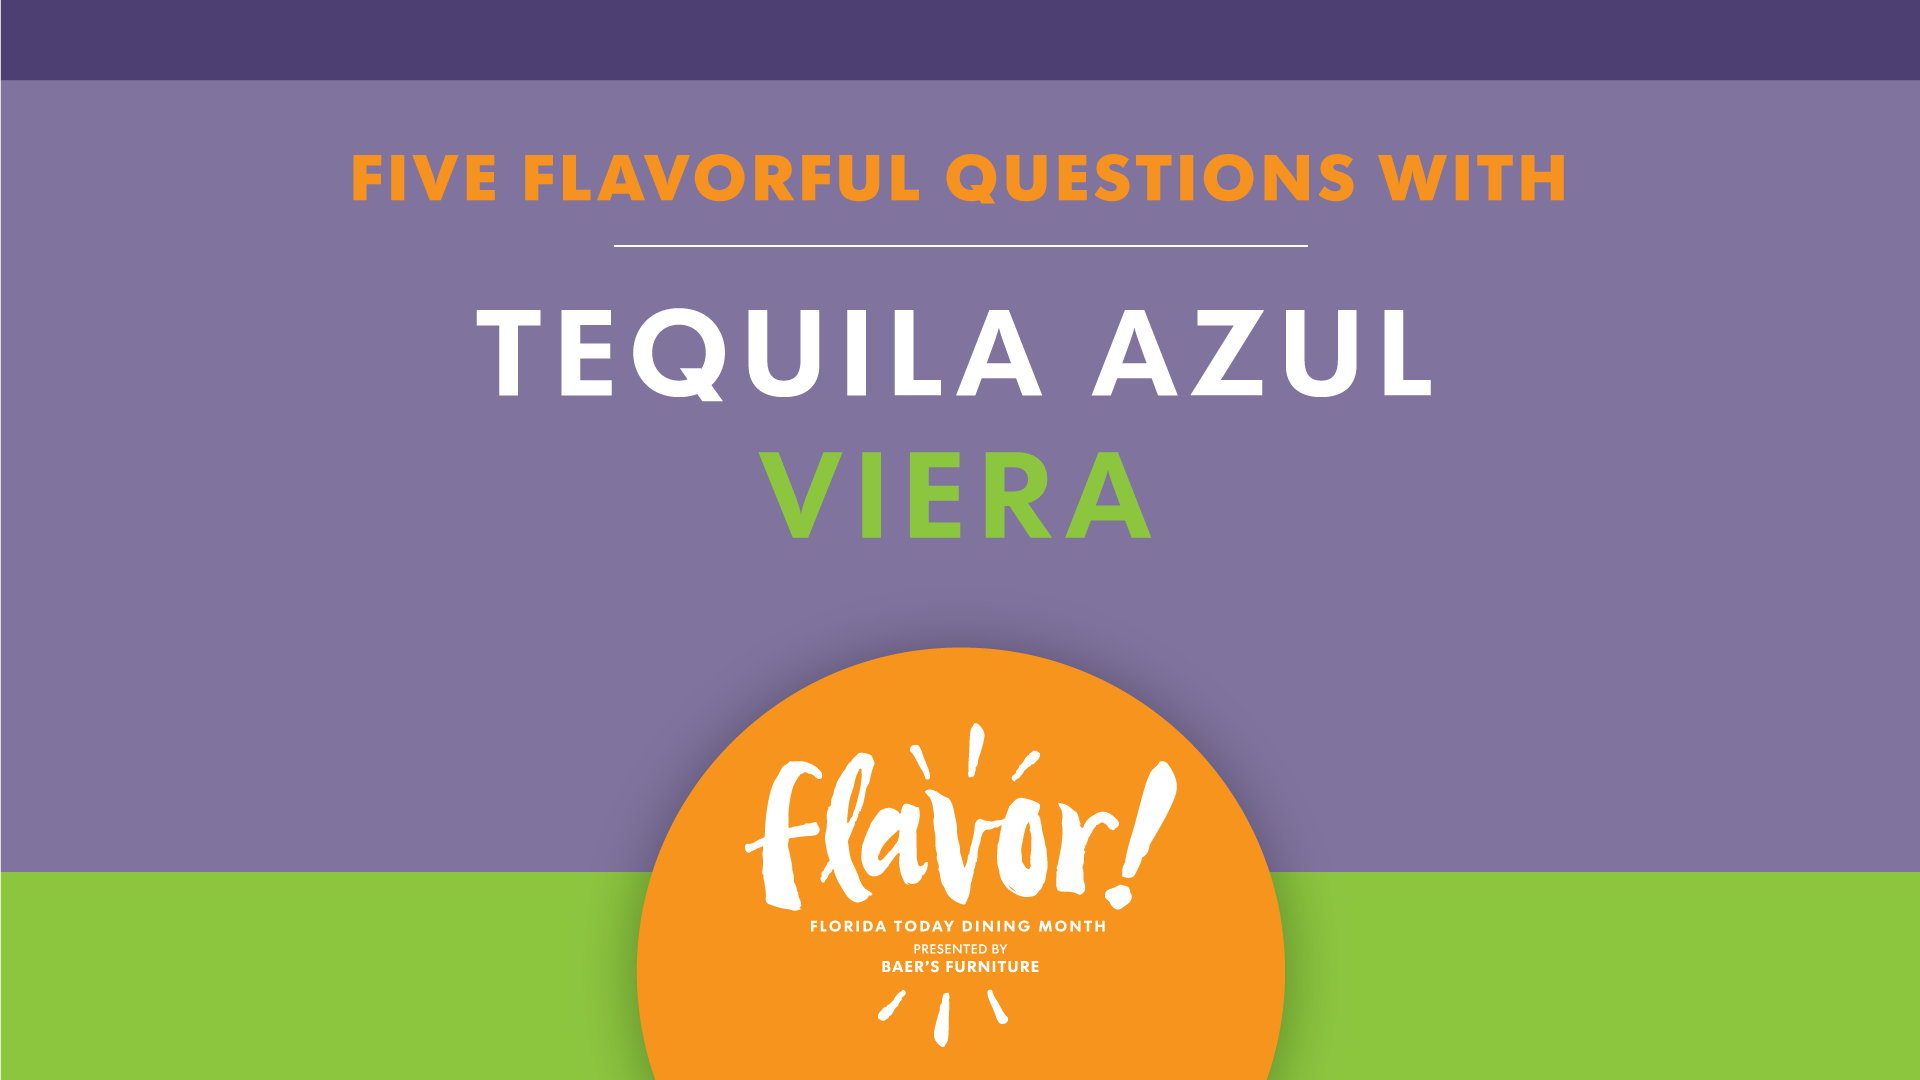 636408259143806368-Name-TequilaAzul-002- Five flavorful questions with Tequila Azul in Viera